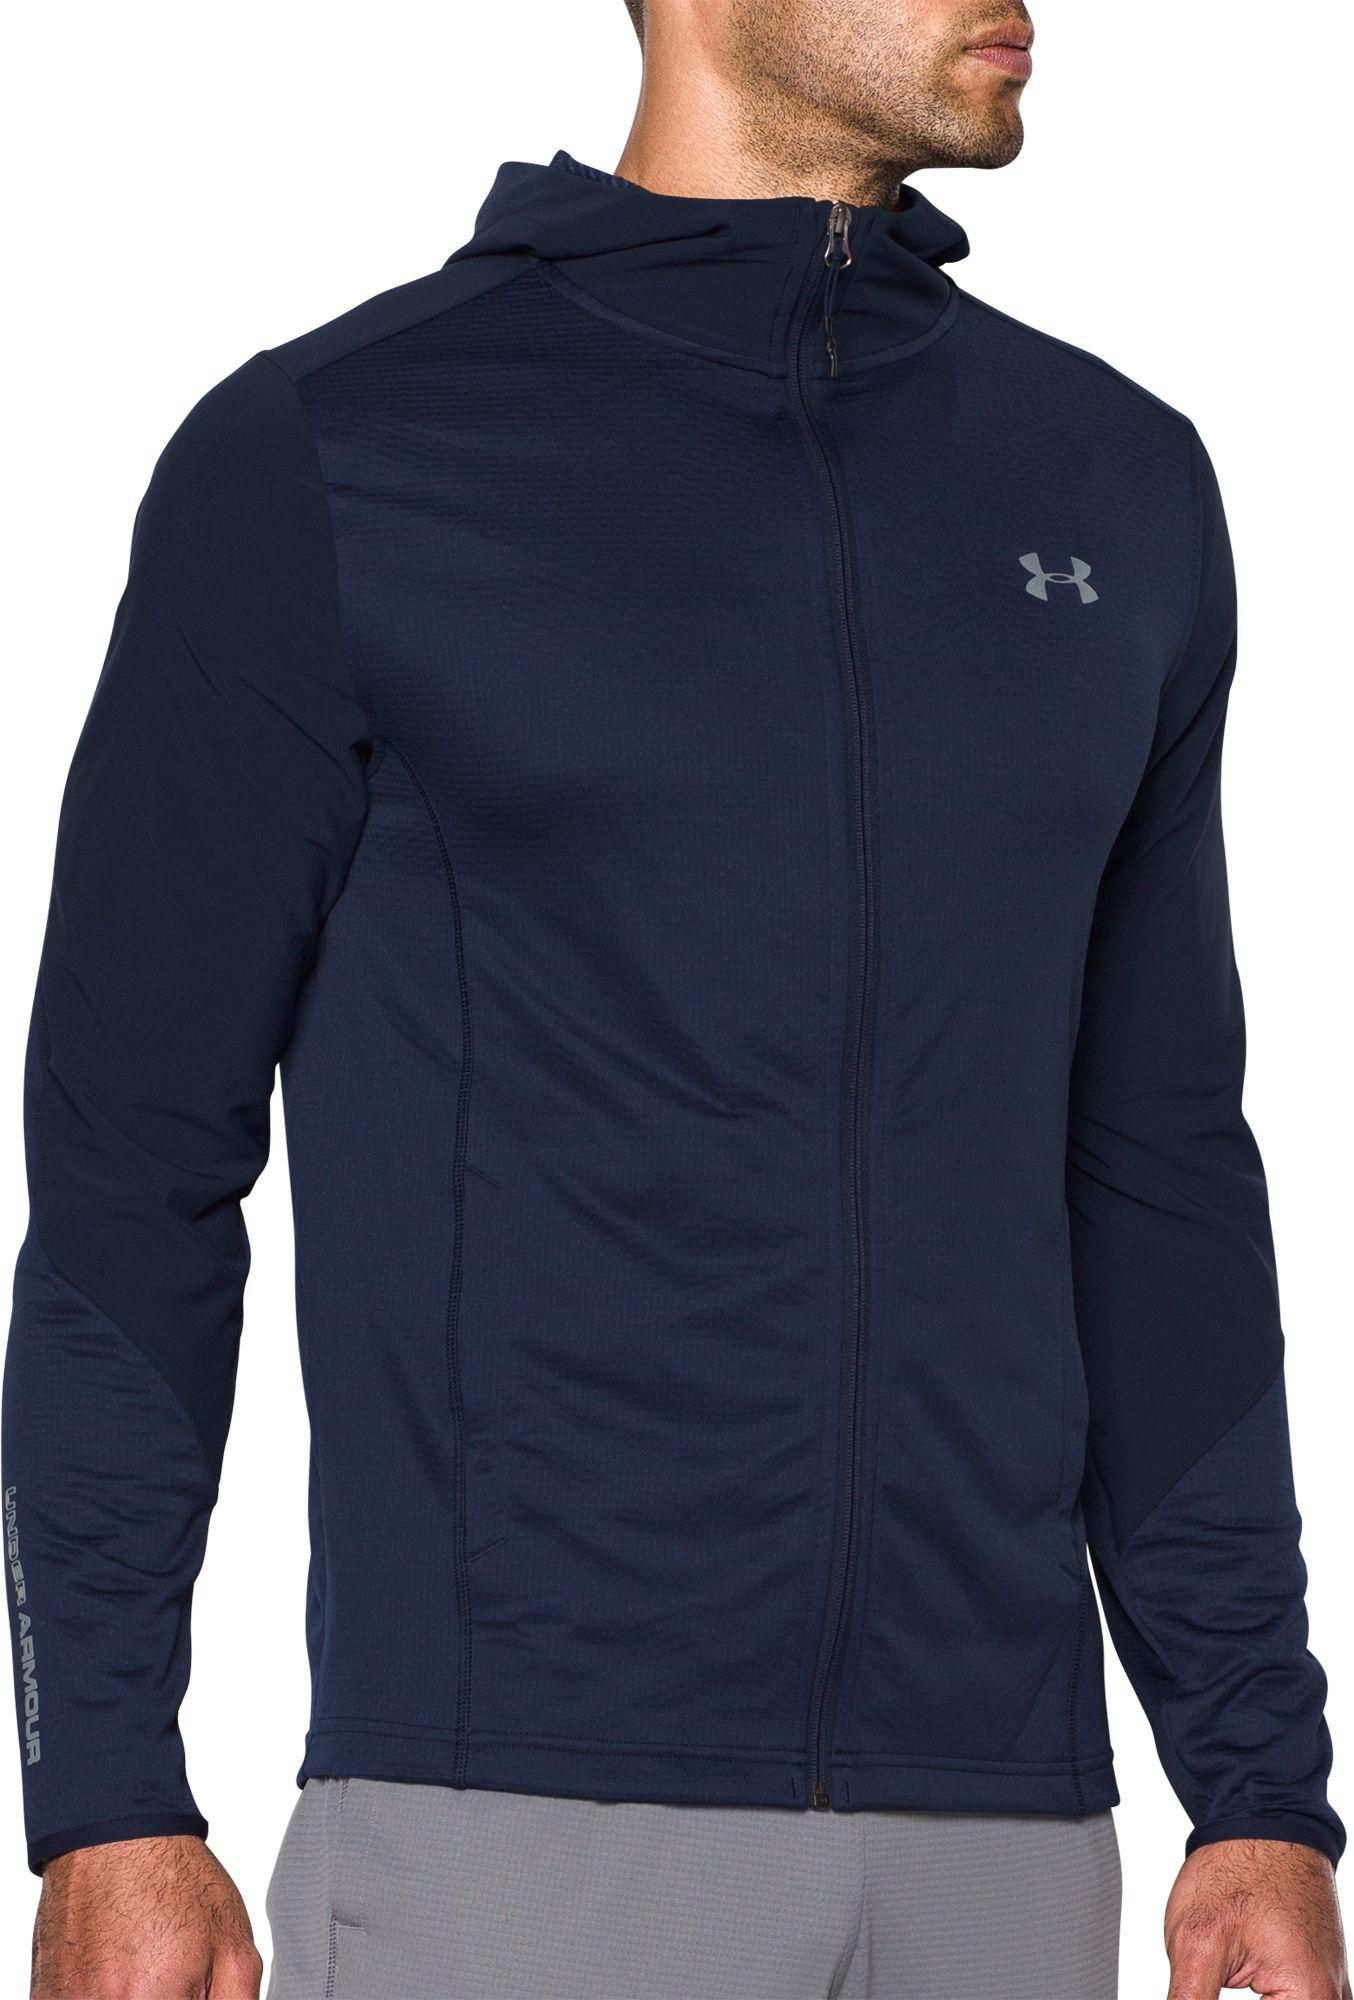 824fa954a7 Under Armour Blue Coldgear Infrared Grid Fitted Full-zip Hoodie for men